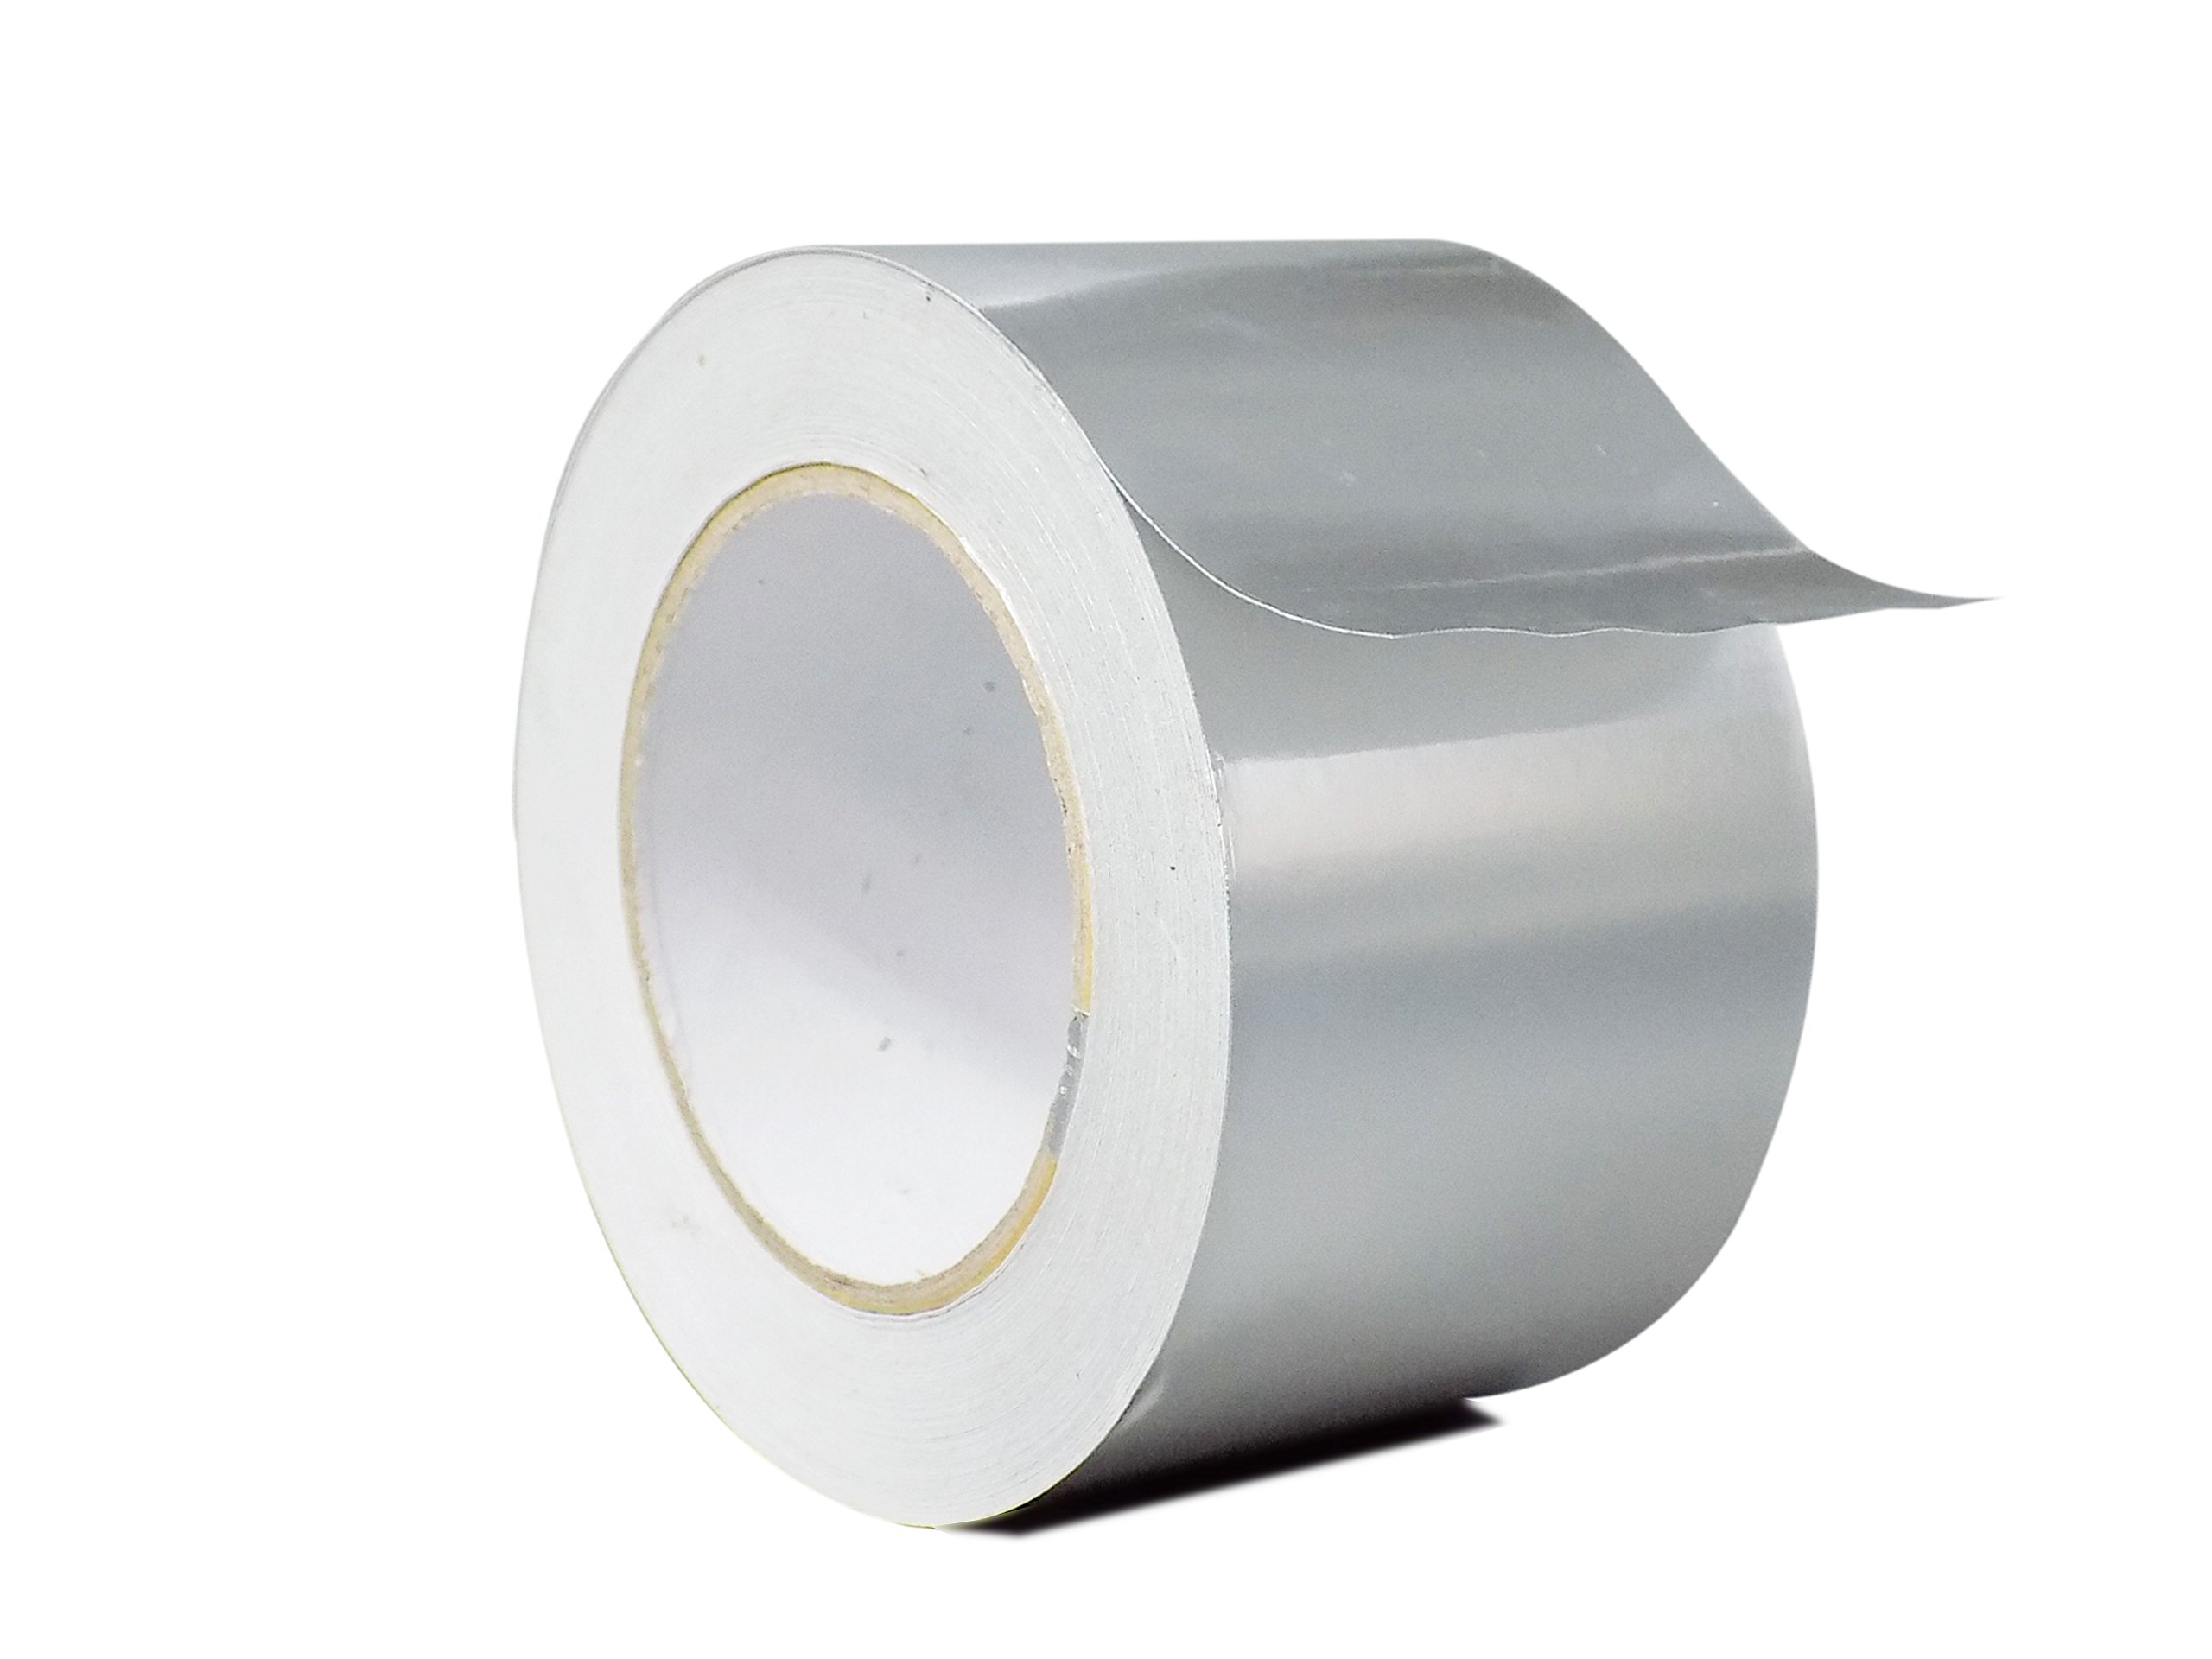 WOD HXT HEXAYURT Tape Aluminum Foil Tape Premium Grade General Purpose Heat Shield Resistant - Good for HVAC, Air Ducts, Insulation (Available in Multiple Packs): 3 in. Wide x 50 yds.